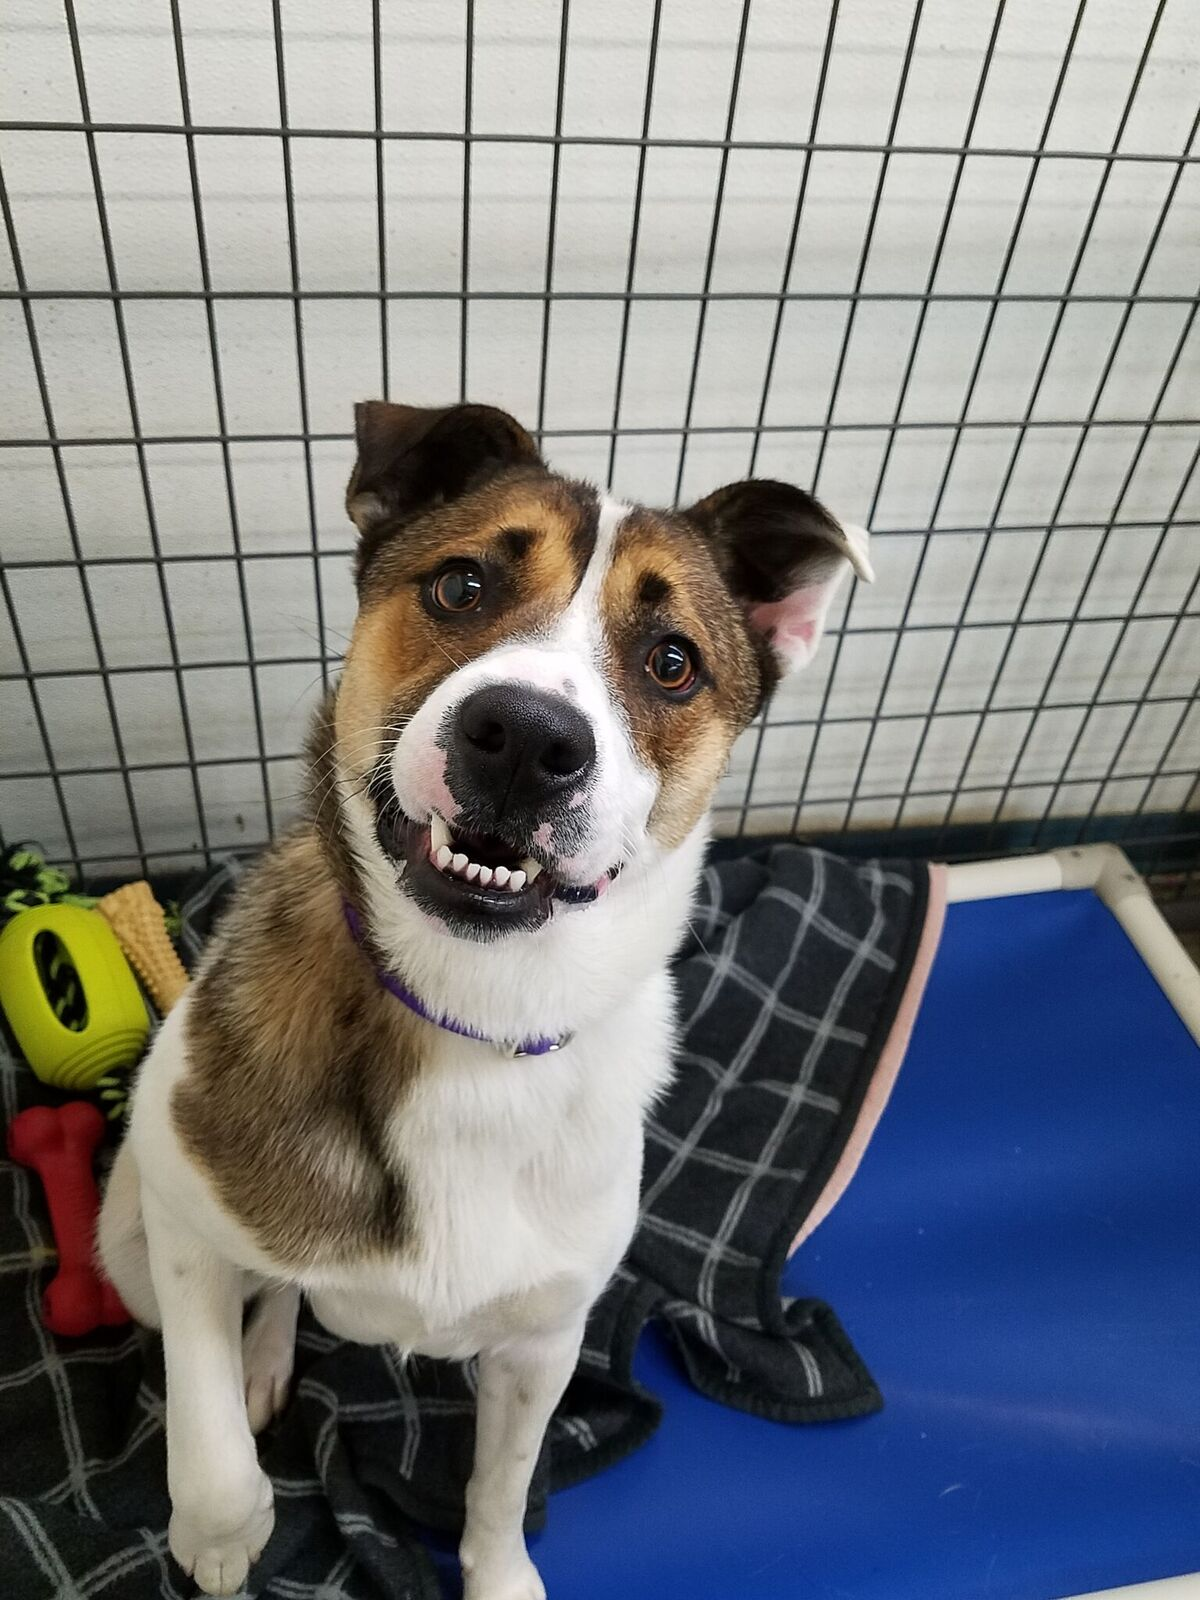 Hi friends, I'm Fritzi – a one year old Australian Cattle Dog mix with a goofy grin! This time around, I'd love to be welcomed inside as part of the family, and I'll return the love tenfold. I can be a bit bashful at first, but I love people, quiet environments and a good routine. New situations and the hustle and bustle of busy streets and hectic life make me nervous. If you're missing a walking or hiking buddy I'm ready for some adventures together! Teens and adults would be my best family members – visit today so I can show you my silly, endearing personality.<p></p>